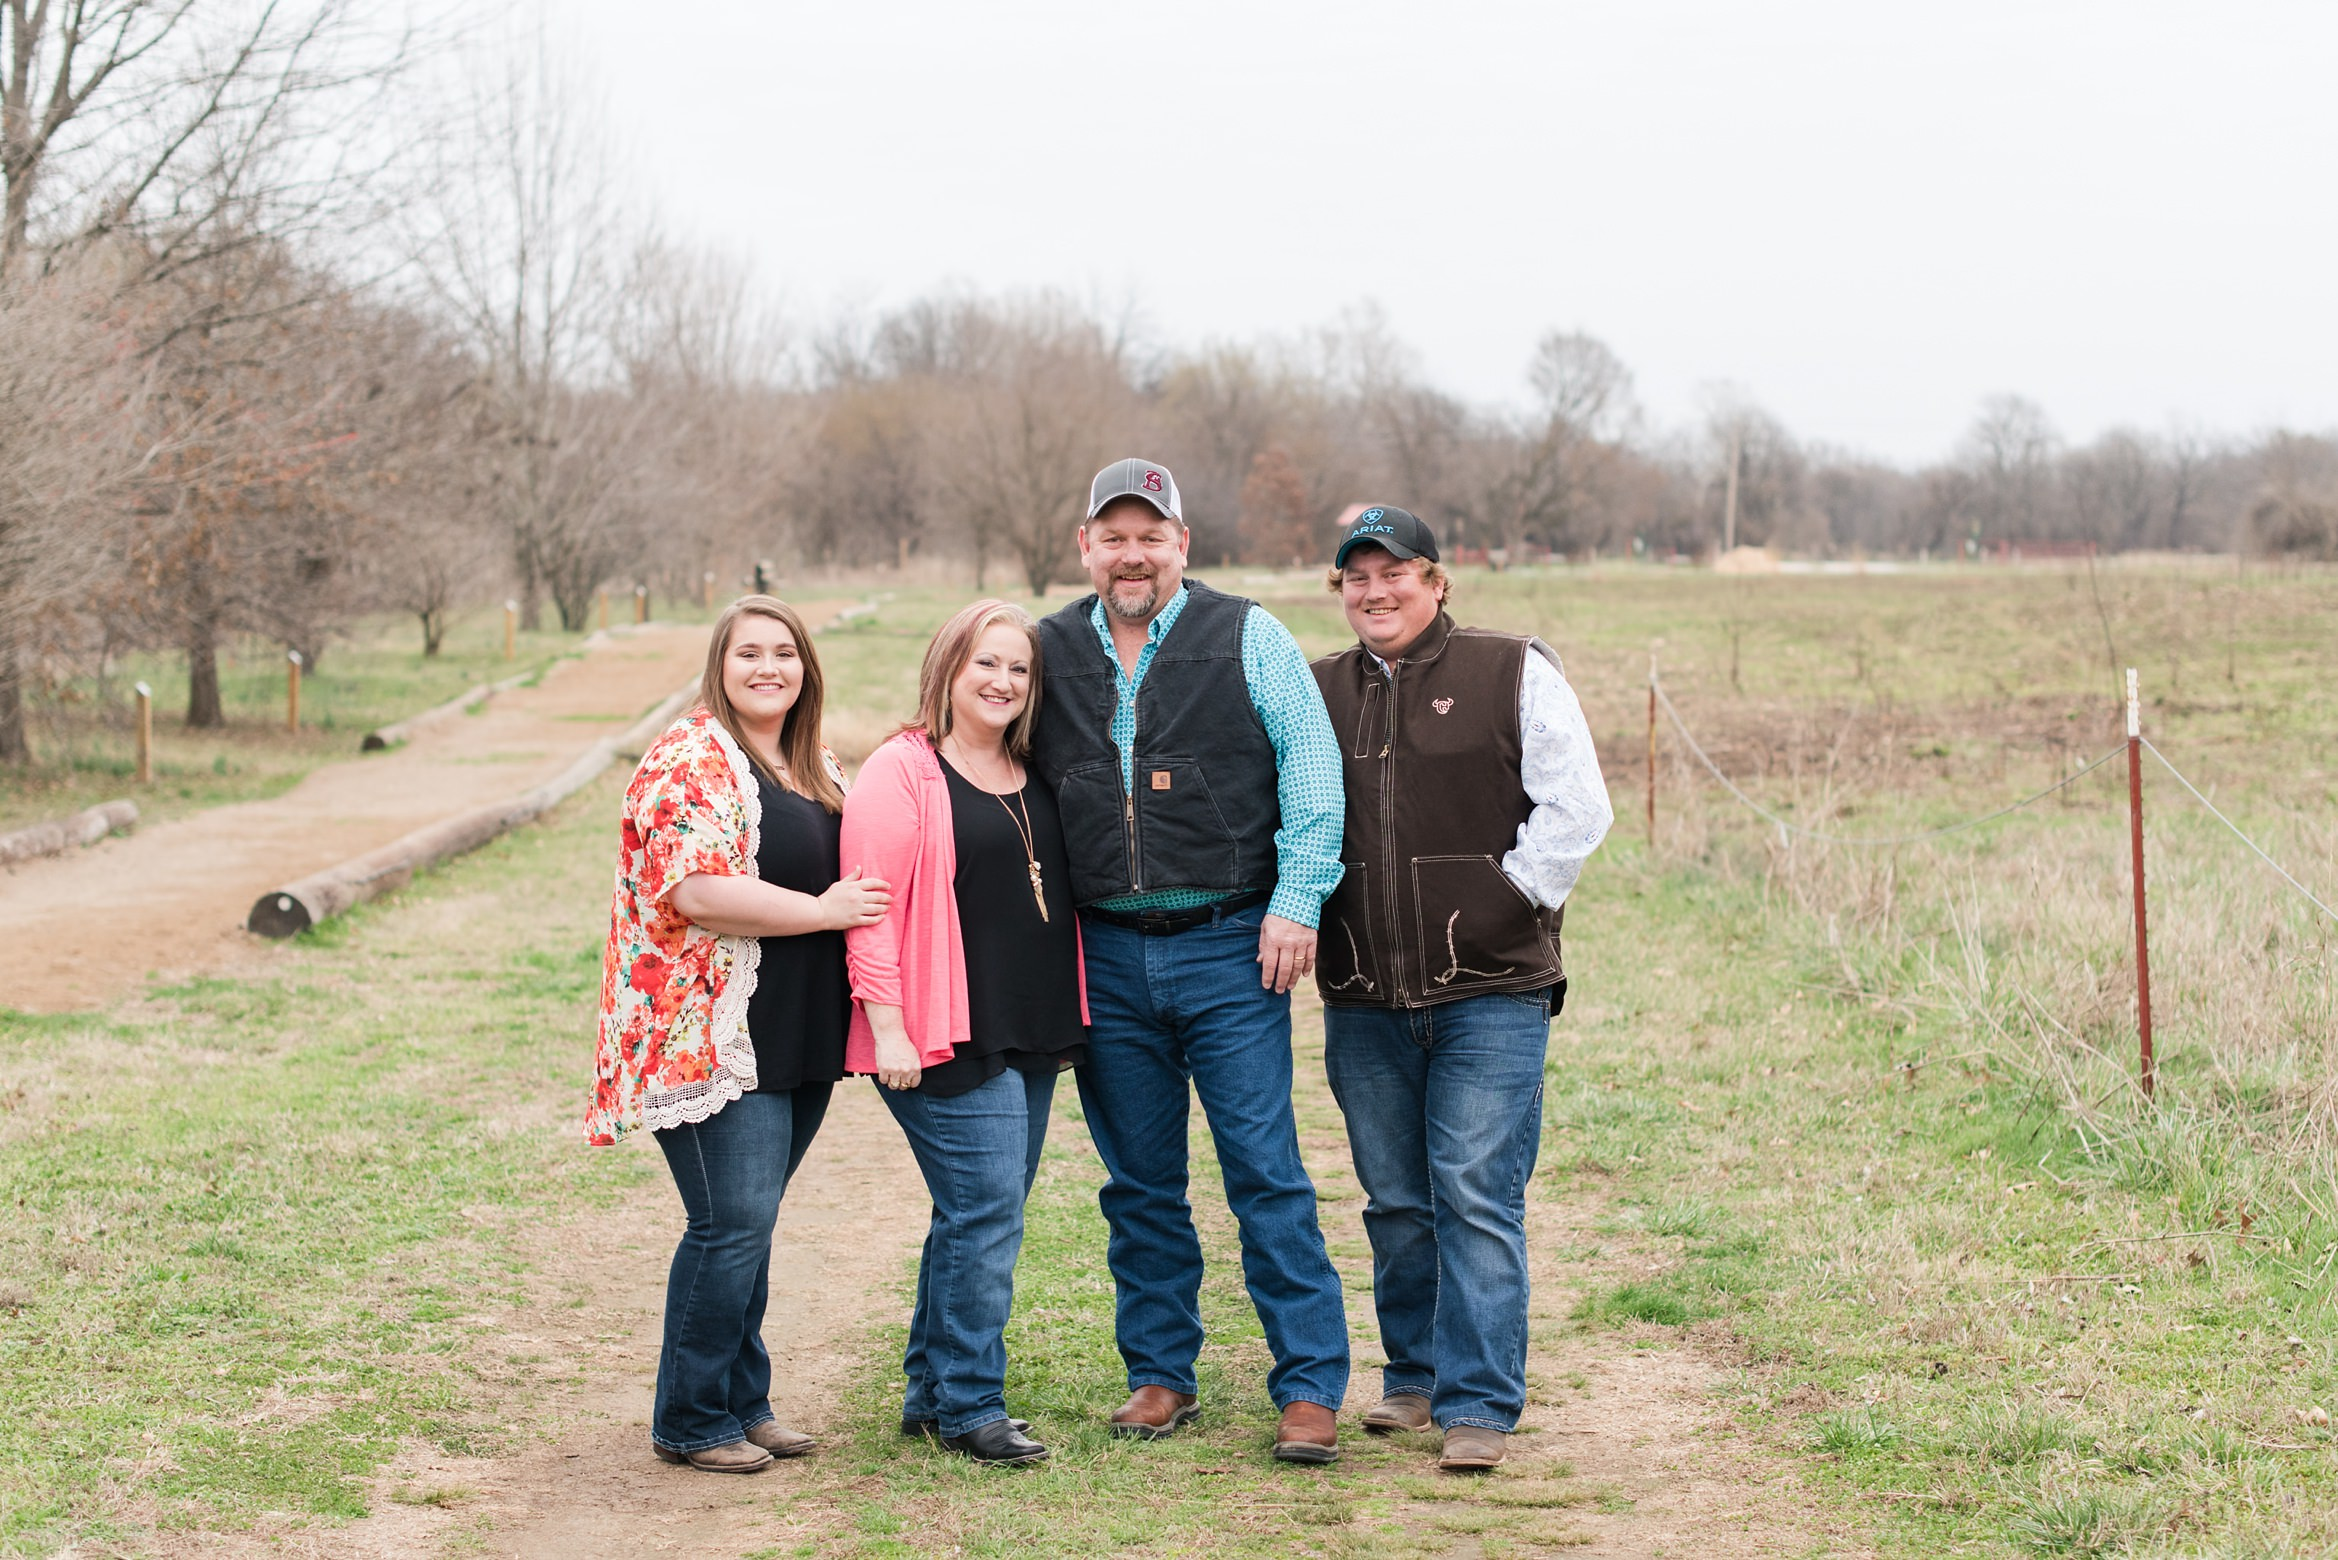 Simmons Family Photos at Eagle Watch Nature Trail in Gentry, AR